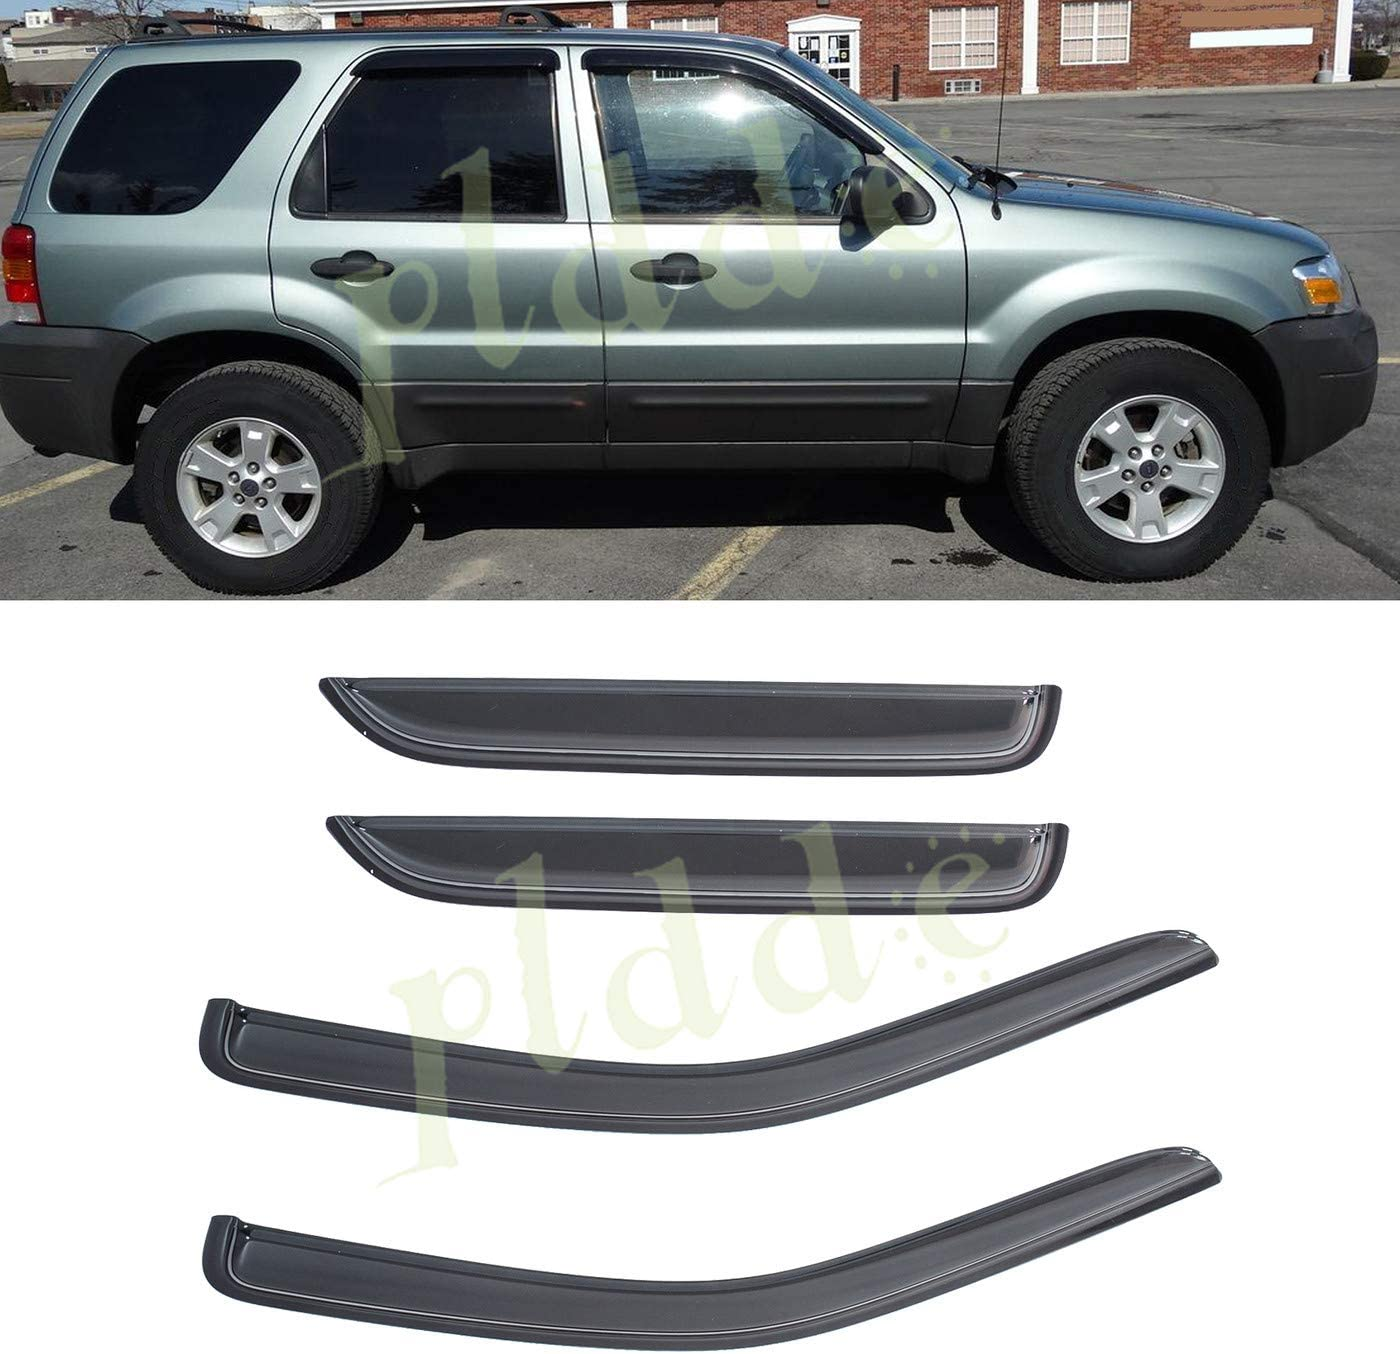 For Ford Escape 01-07 In-Channel Ventvisor Smoke Front /& Rear Window Deflectors